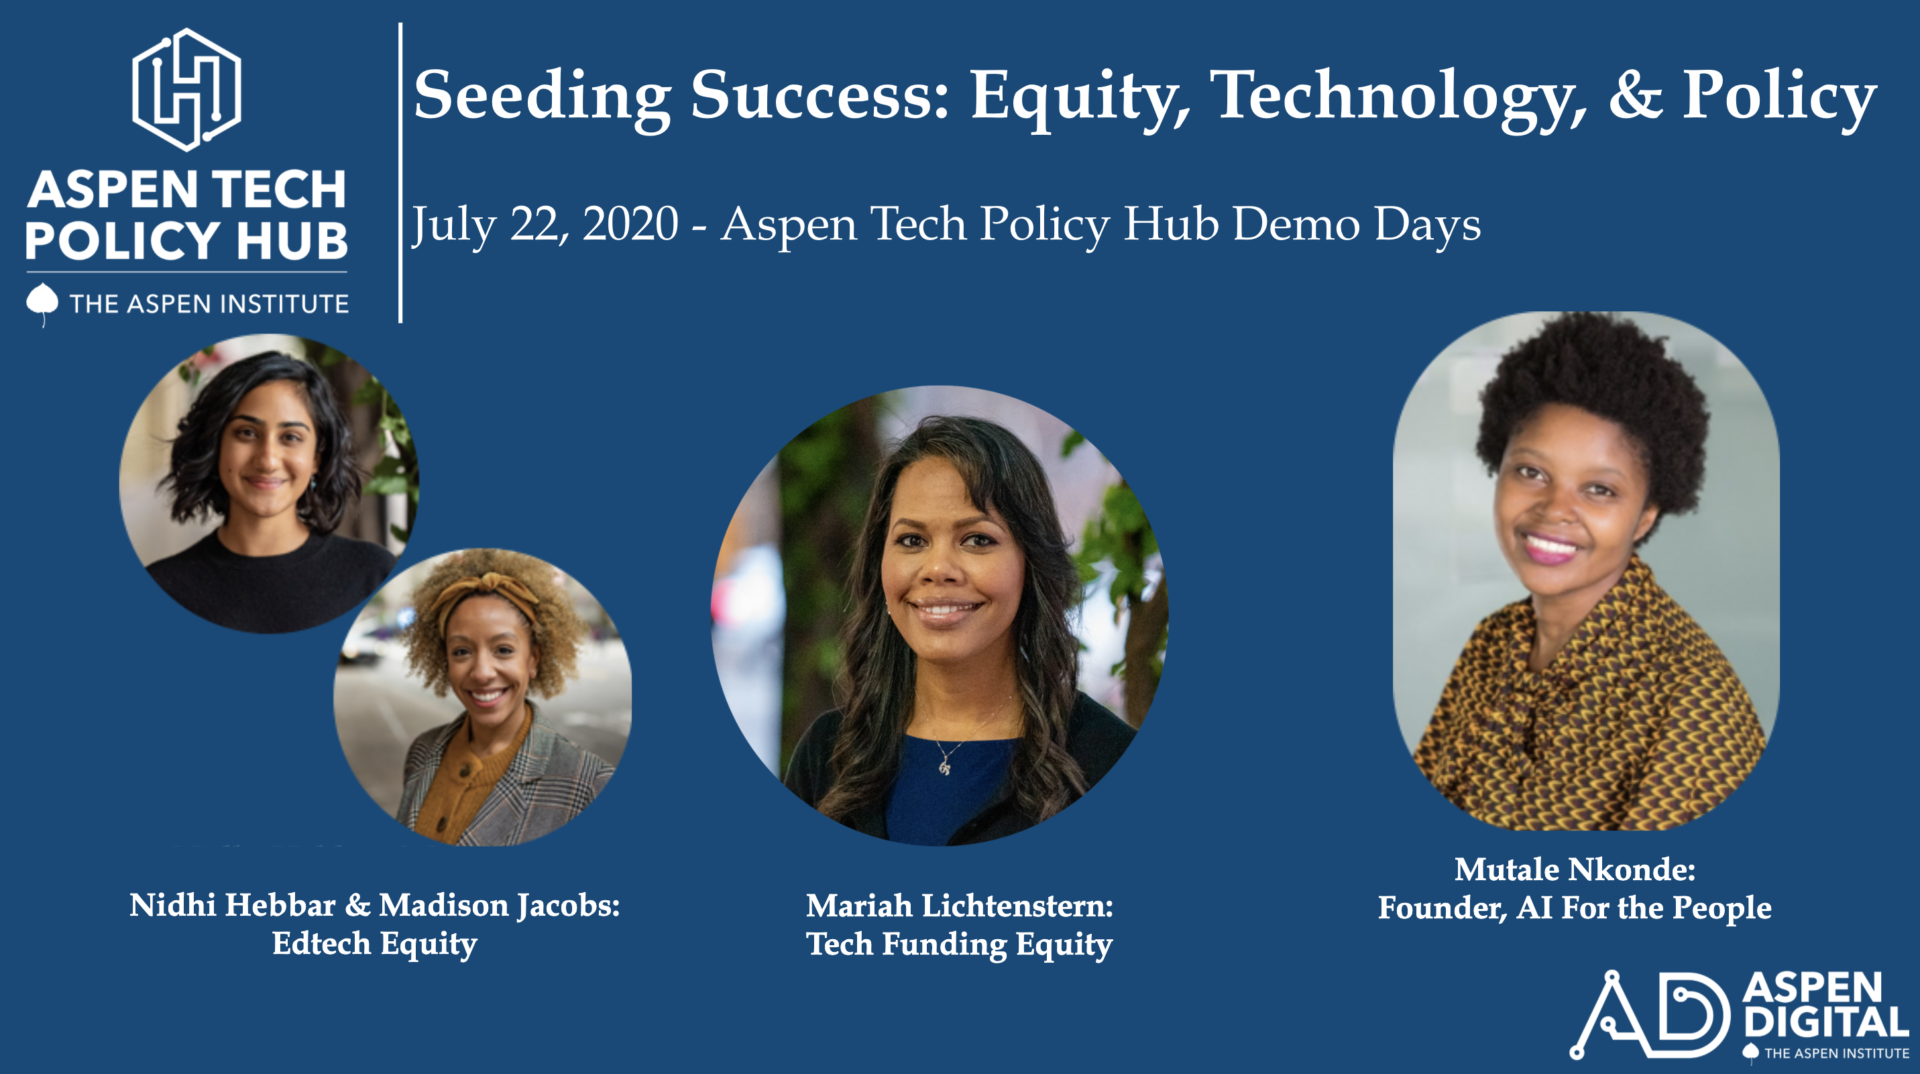 Seeding Success: Equity, Tech & Policy